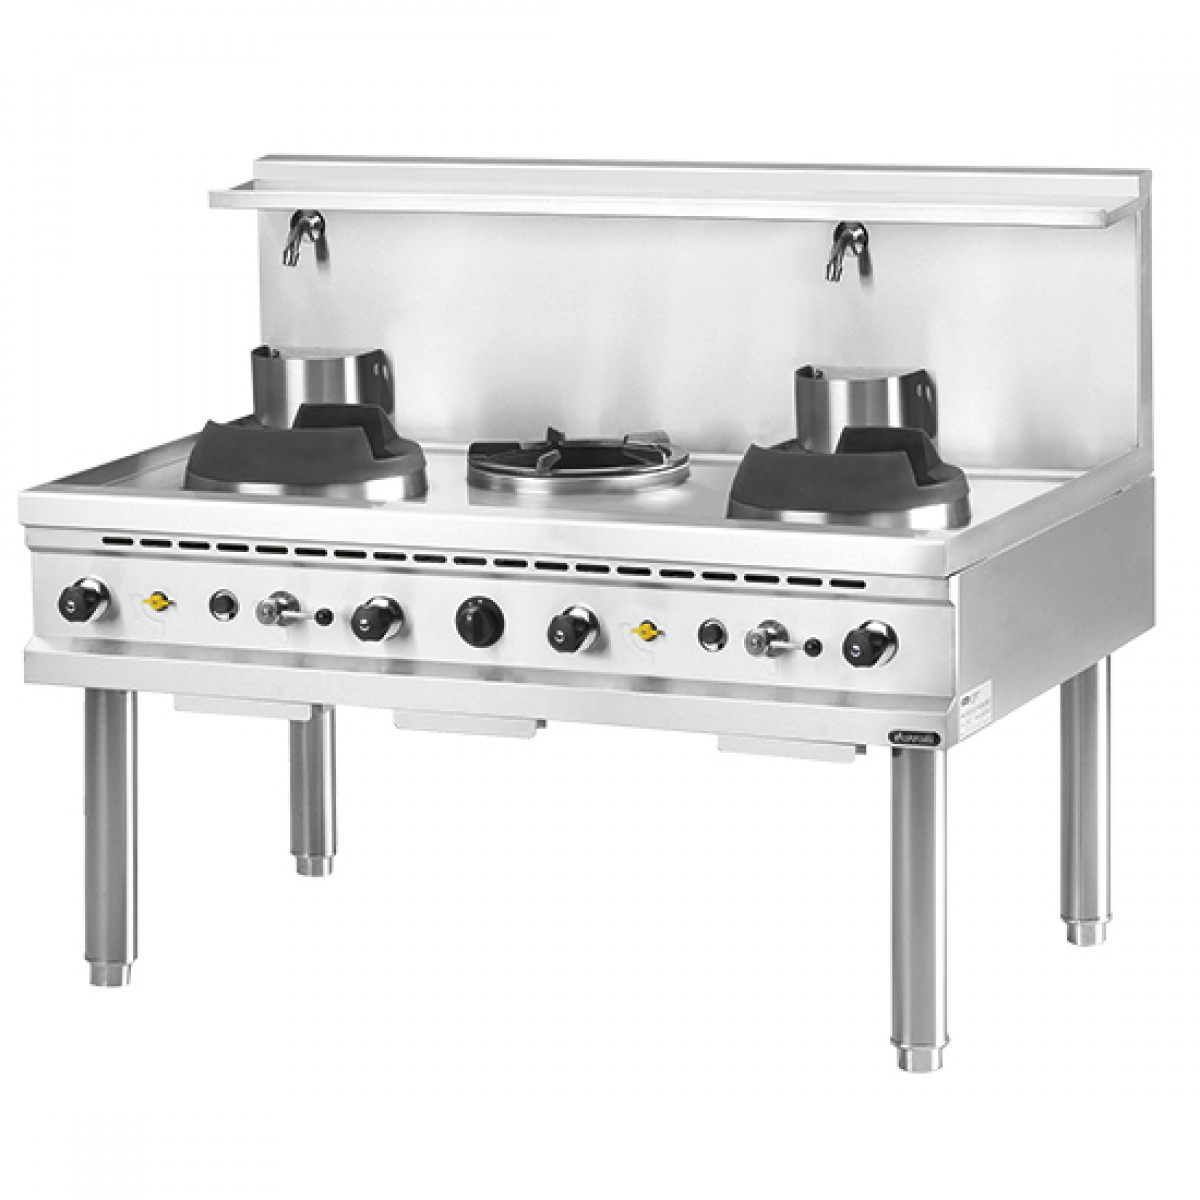 Cucina Wok Gas Wok Hob 2 Burners 1 Soup Burner 2 Water Taps